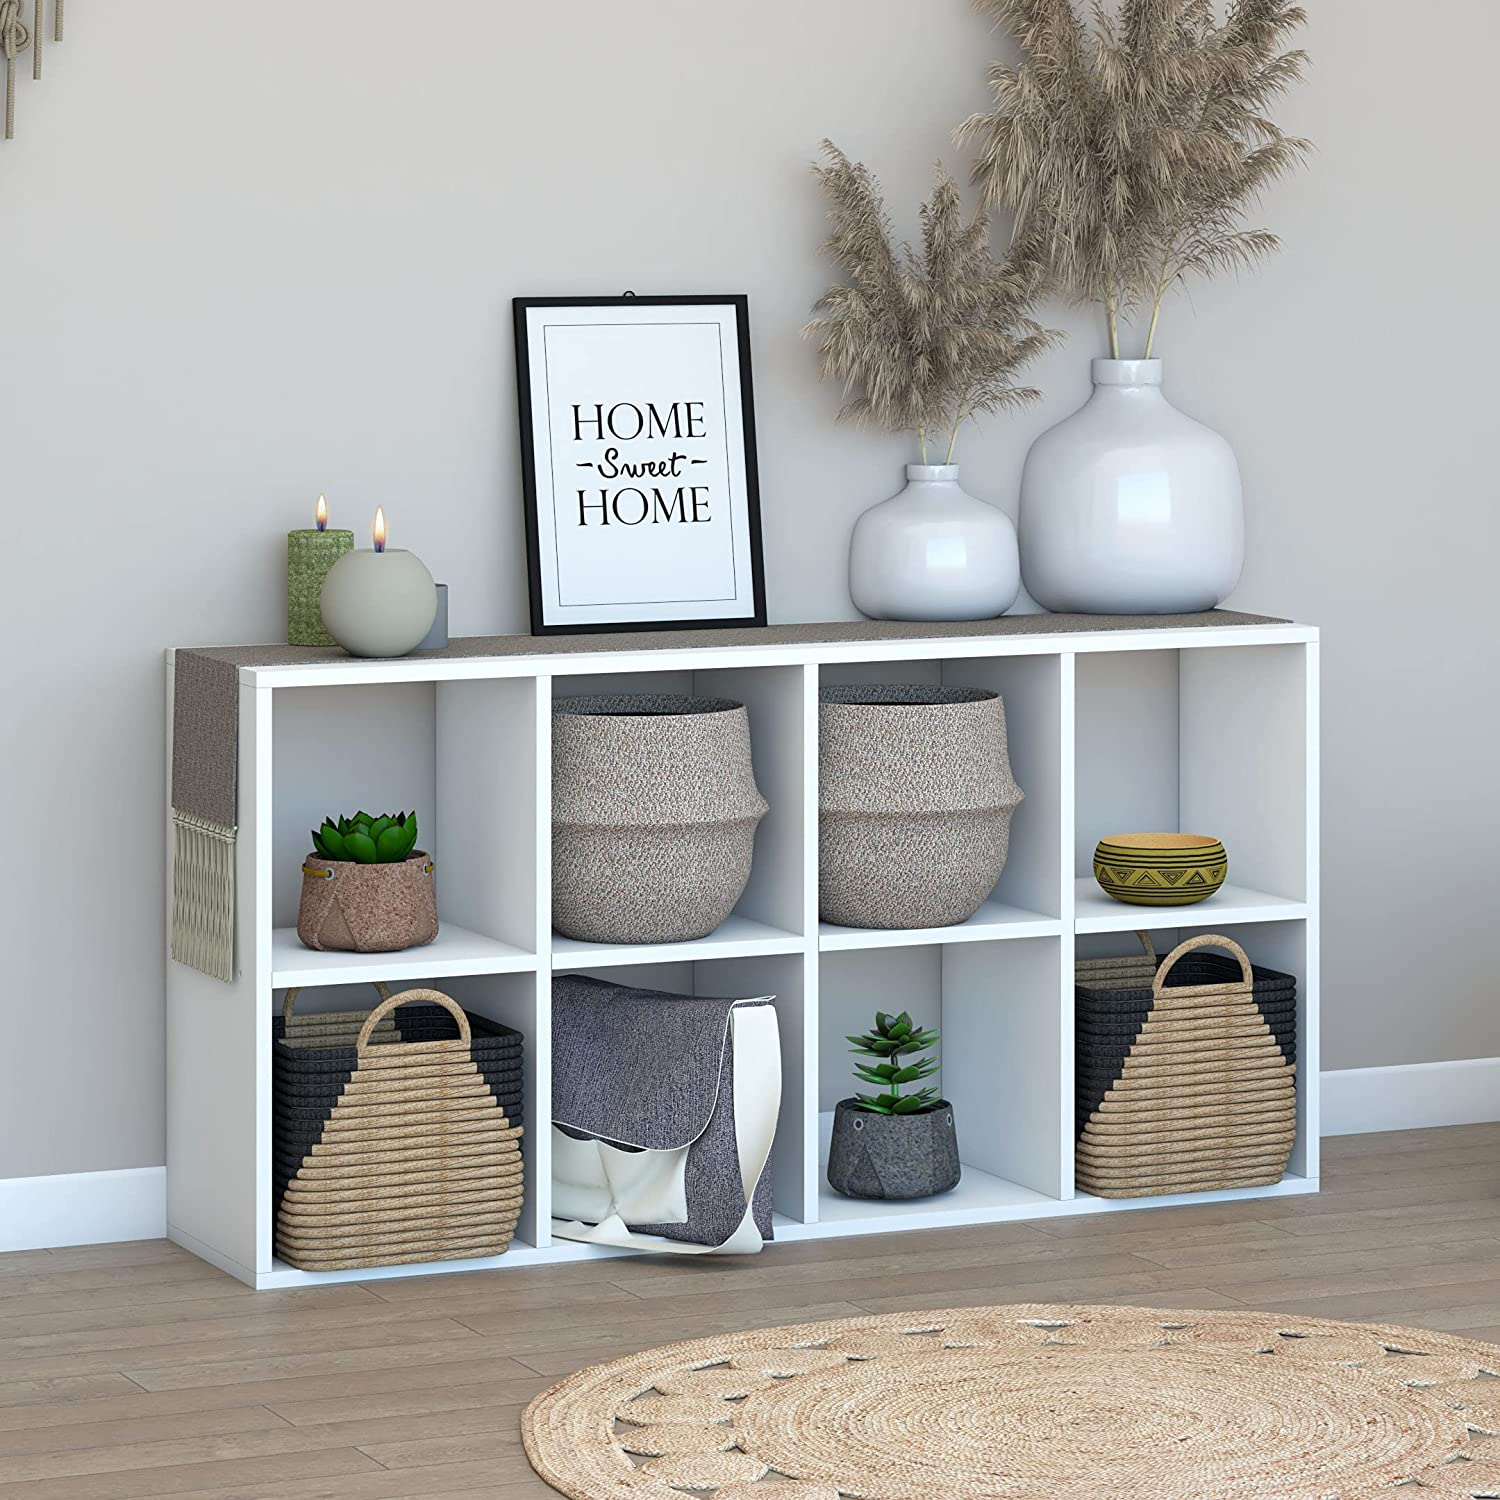 LETMOBEL Limited time cheap sale Cube Max 45% OFF Organizer Book Shelf Storage with